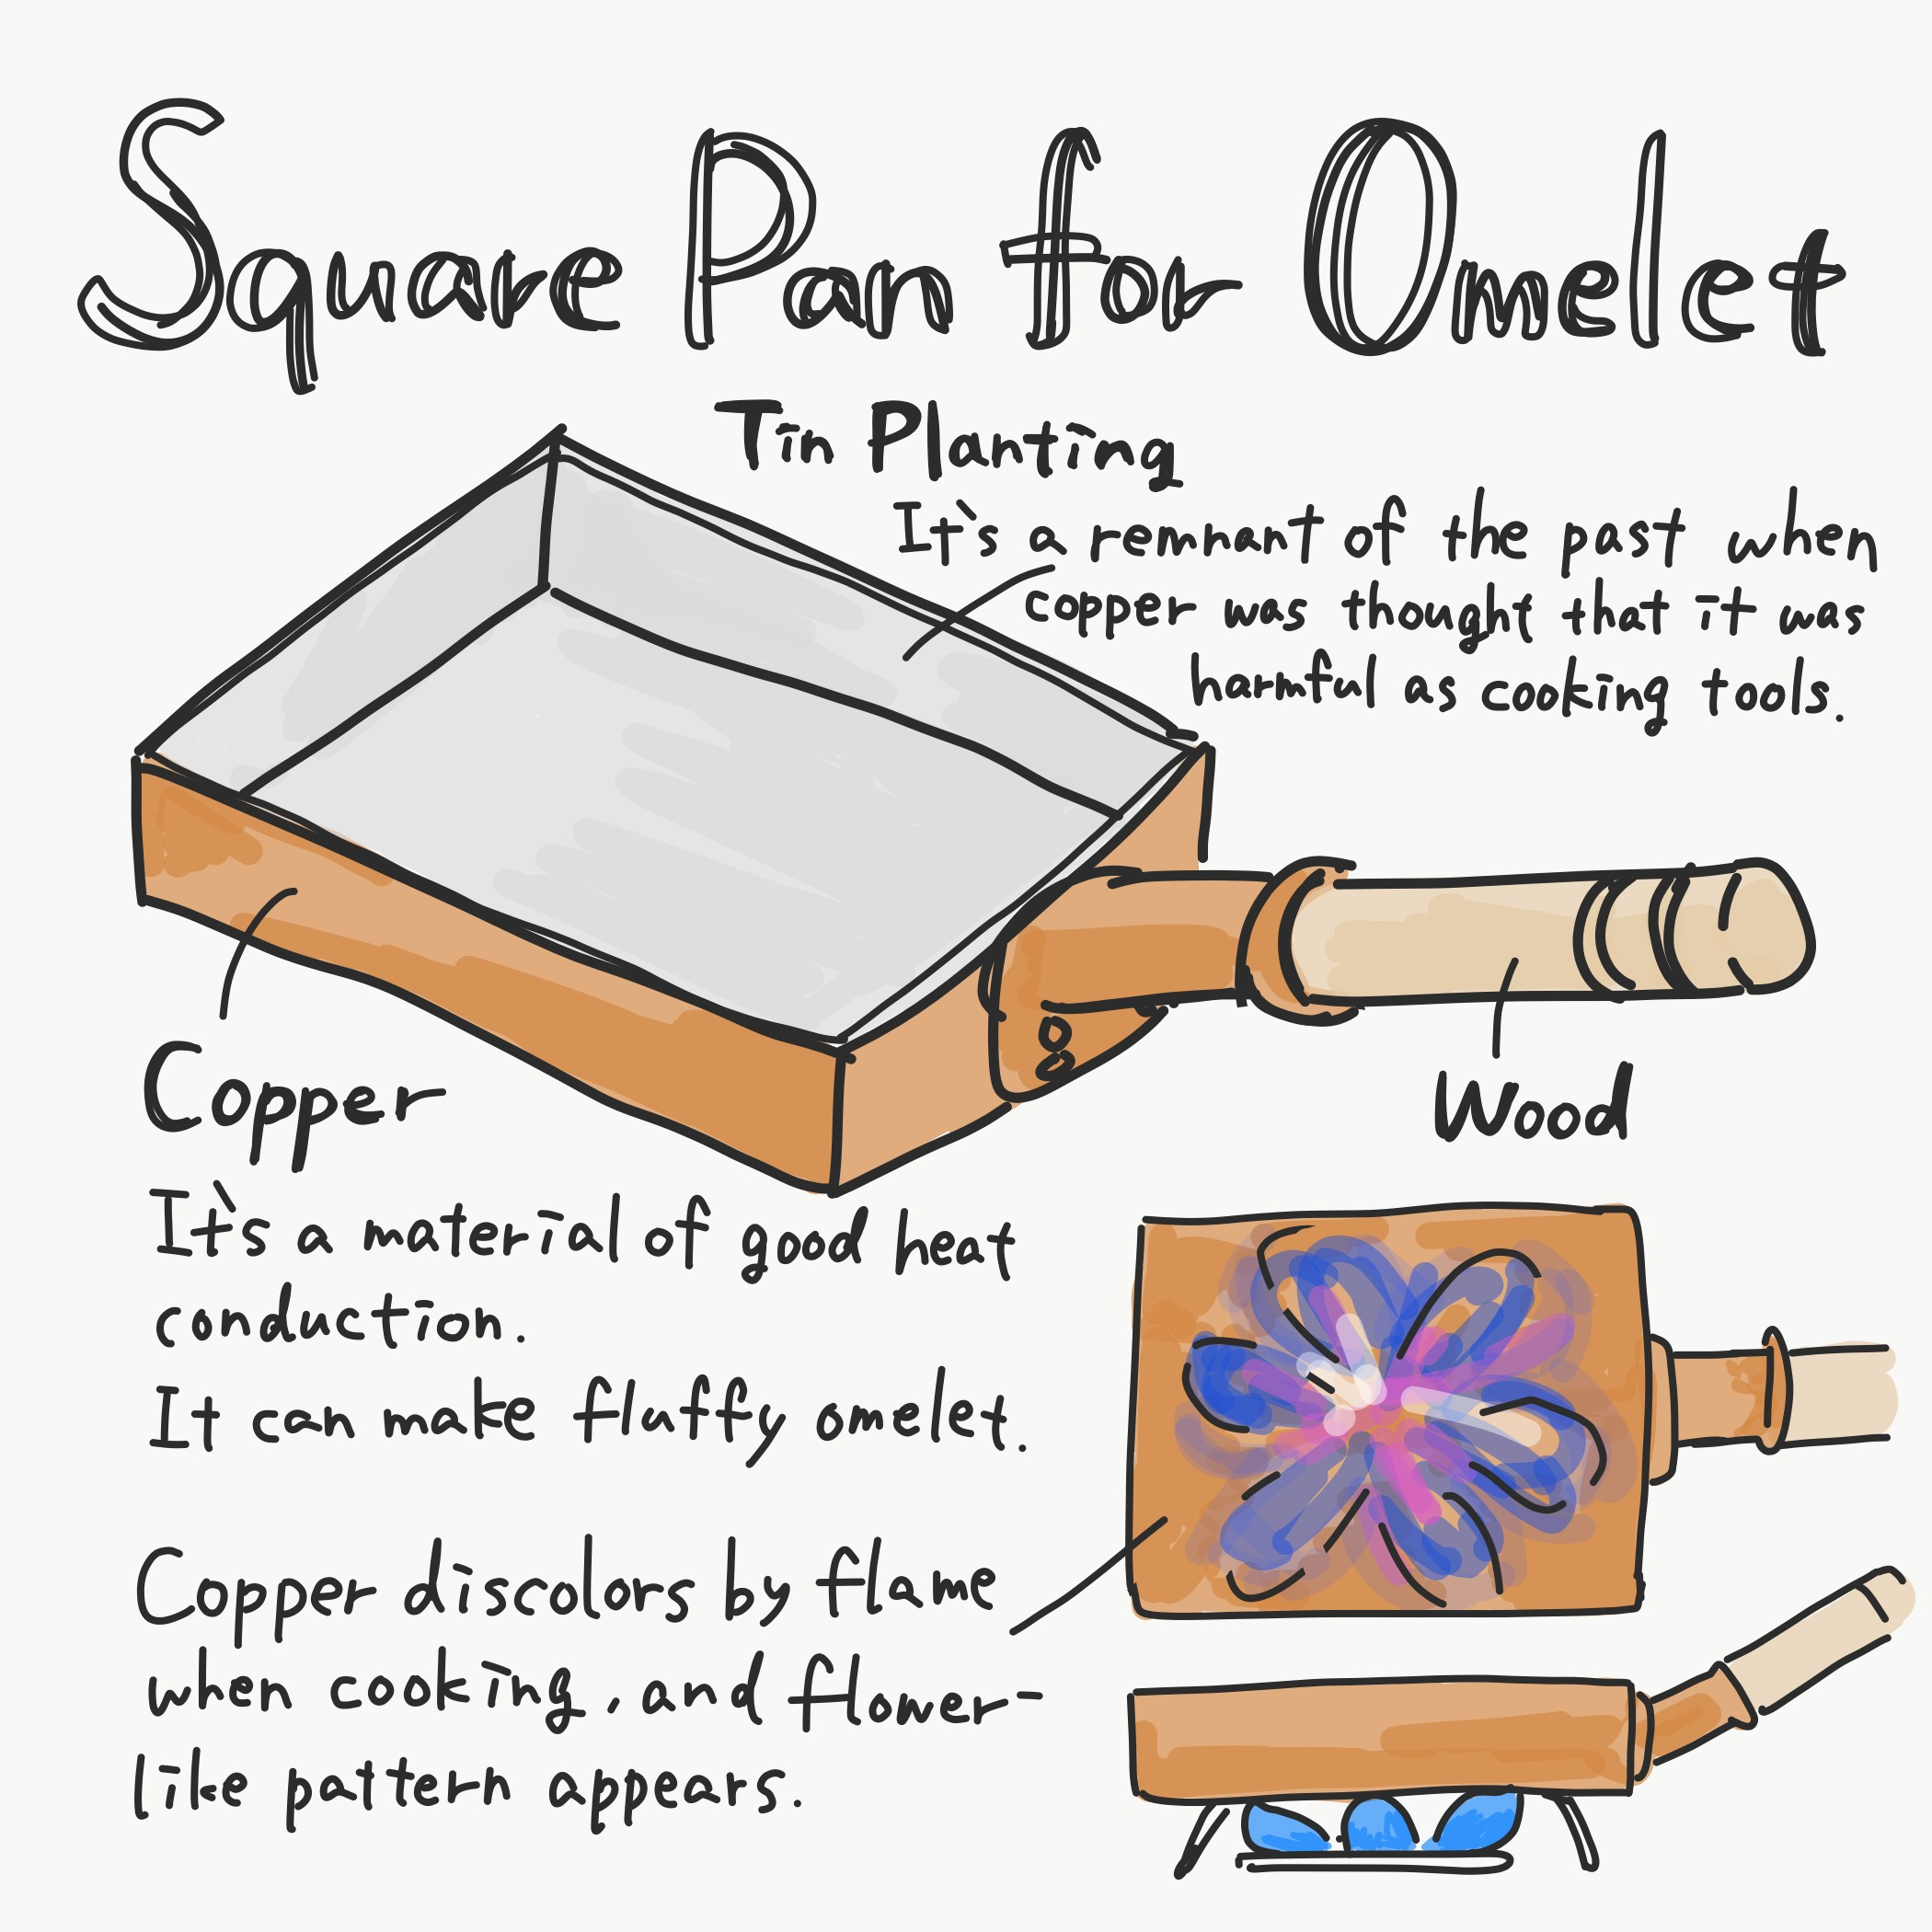 Square Pan for Omelet Image